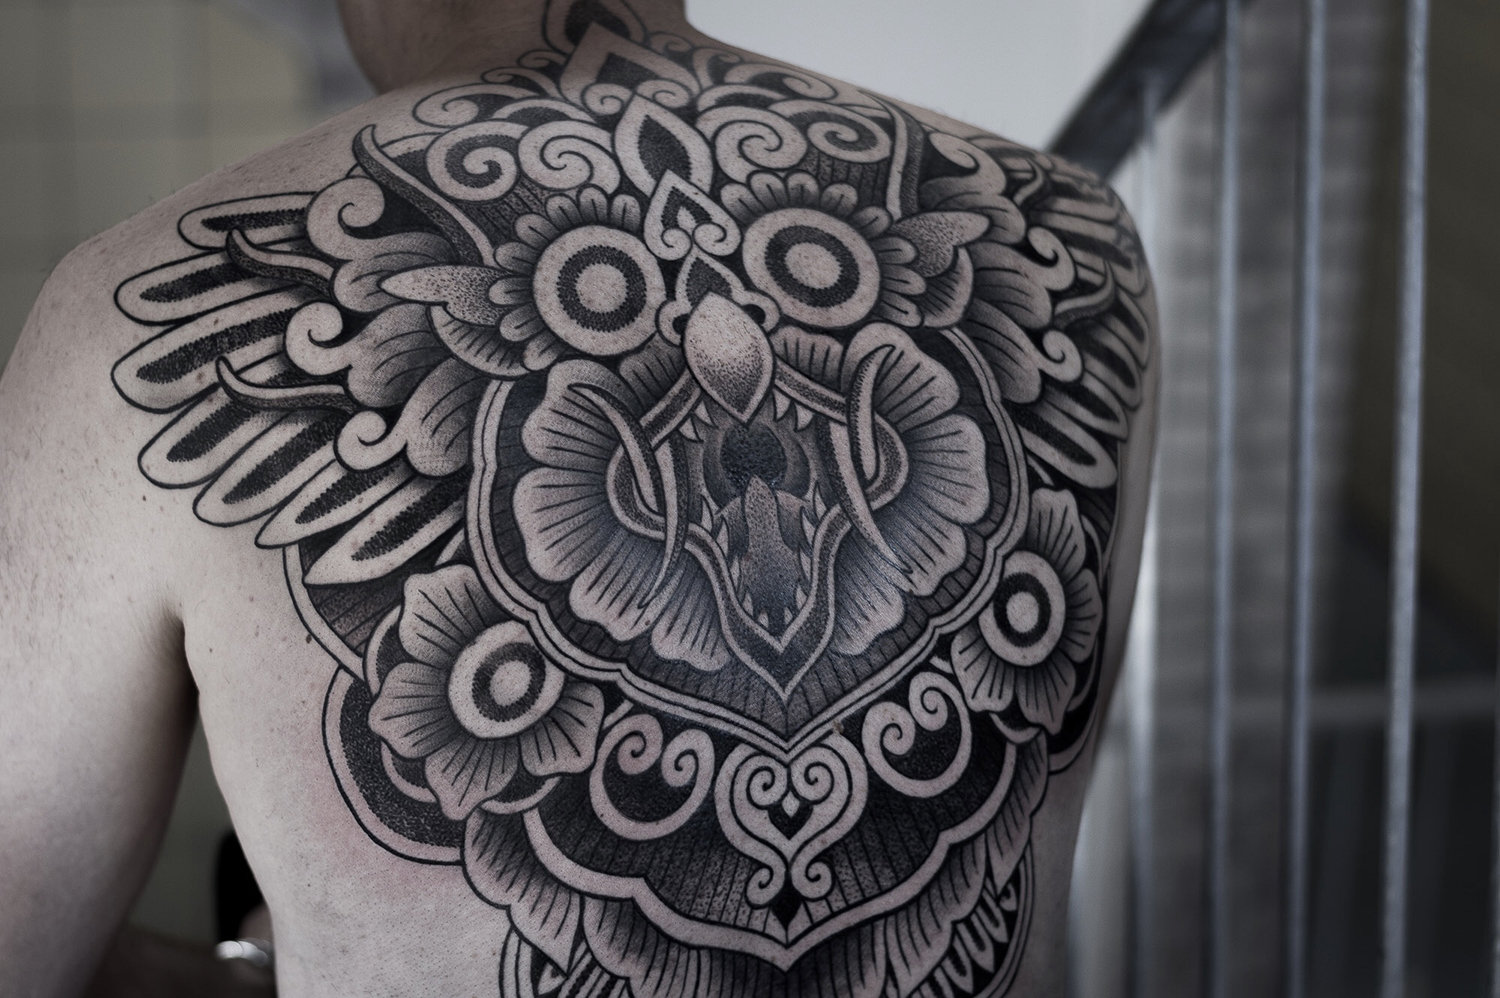 garuda back tattoo by paradox from the netherlands